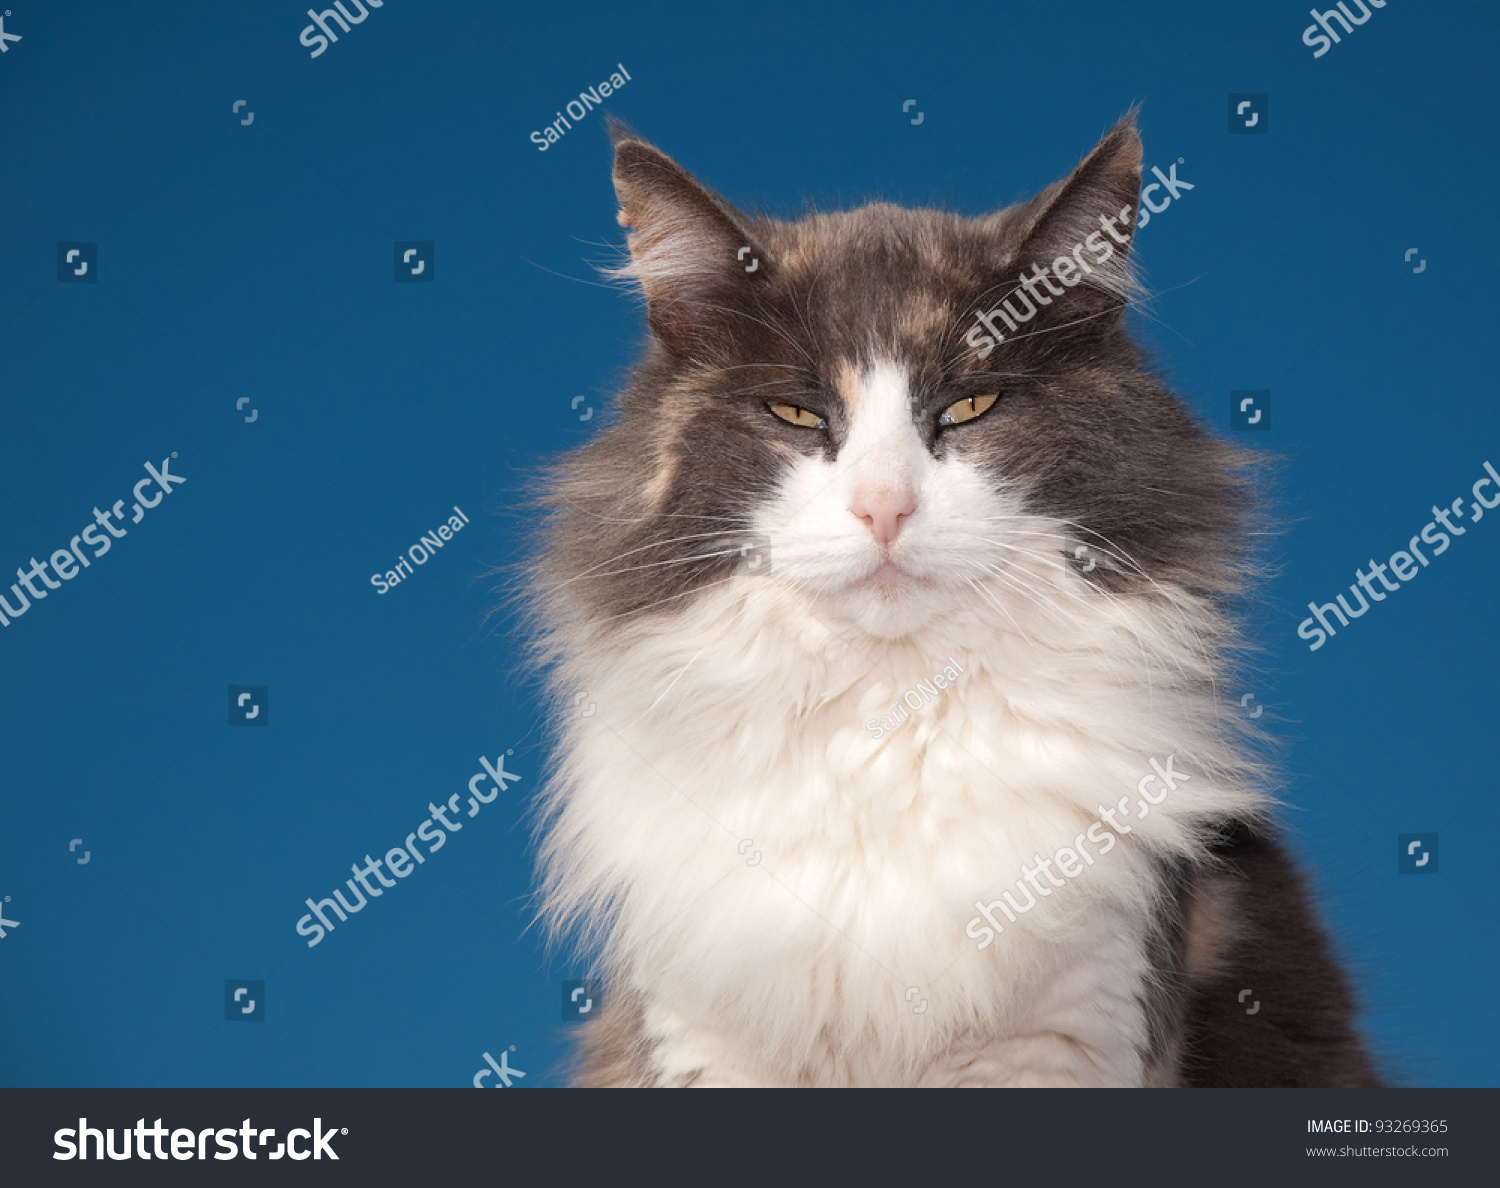 stock-photo-diluted-calico-cat-with-an-a